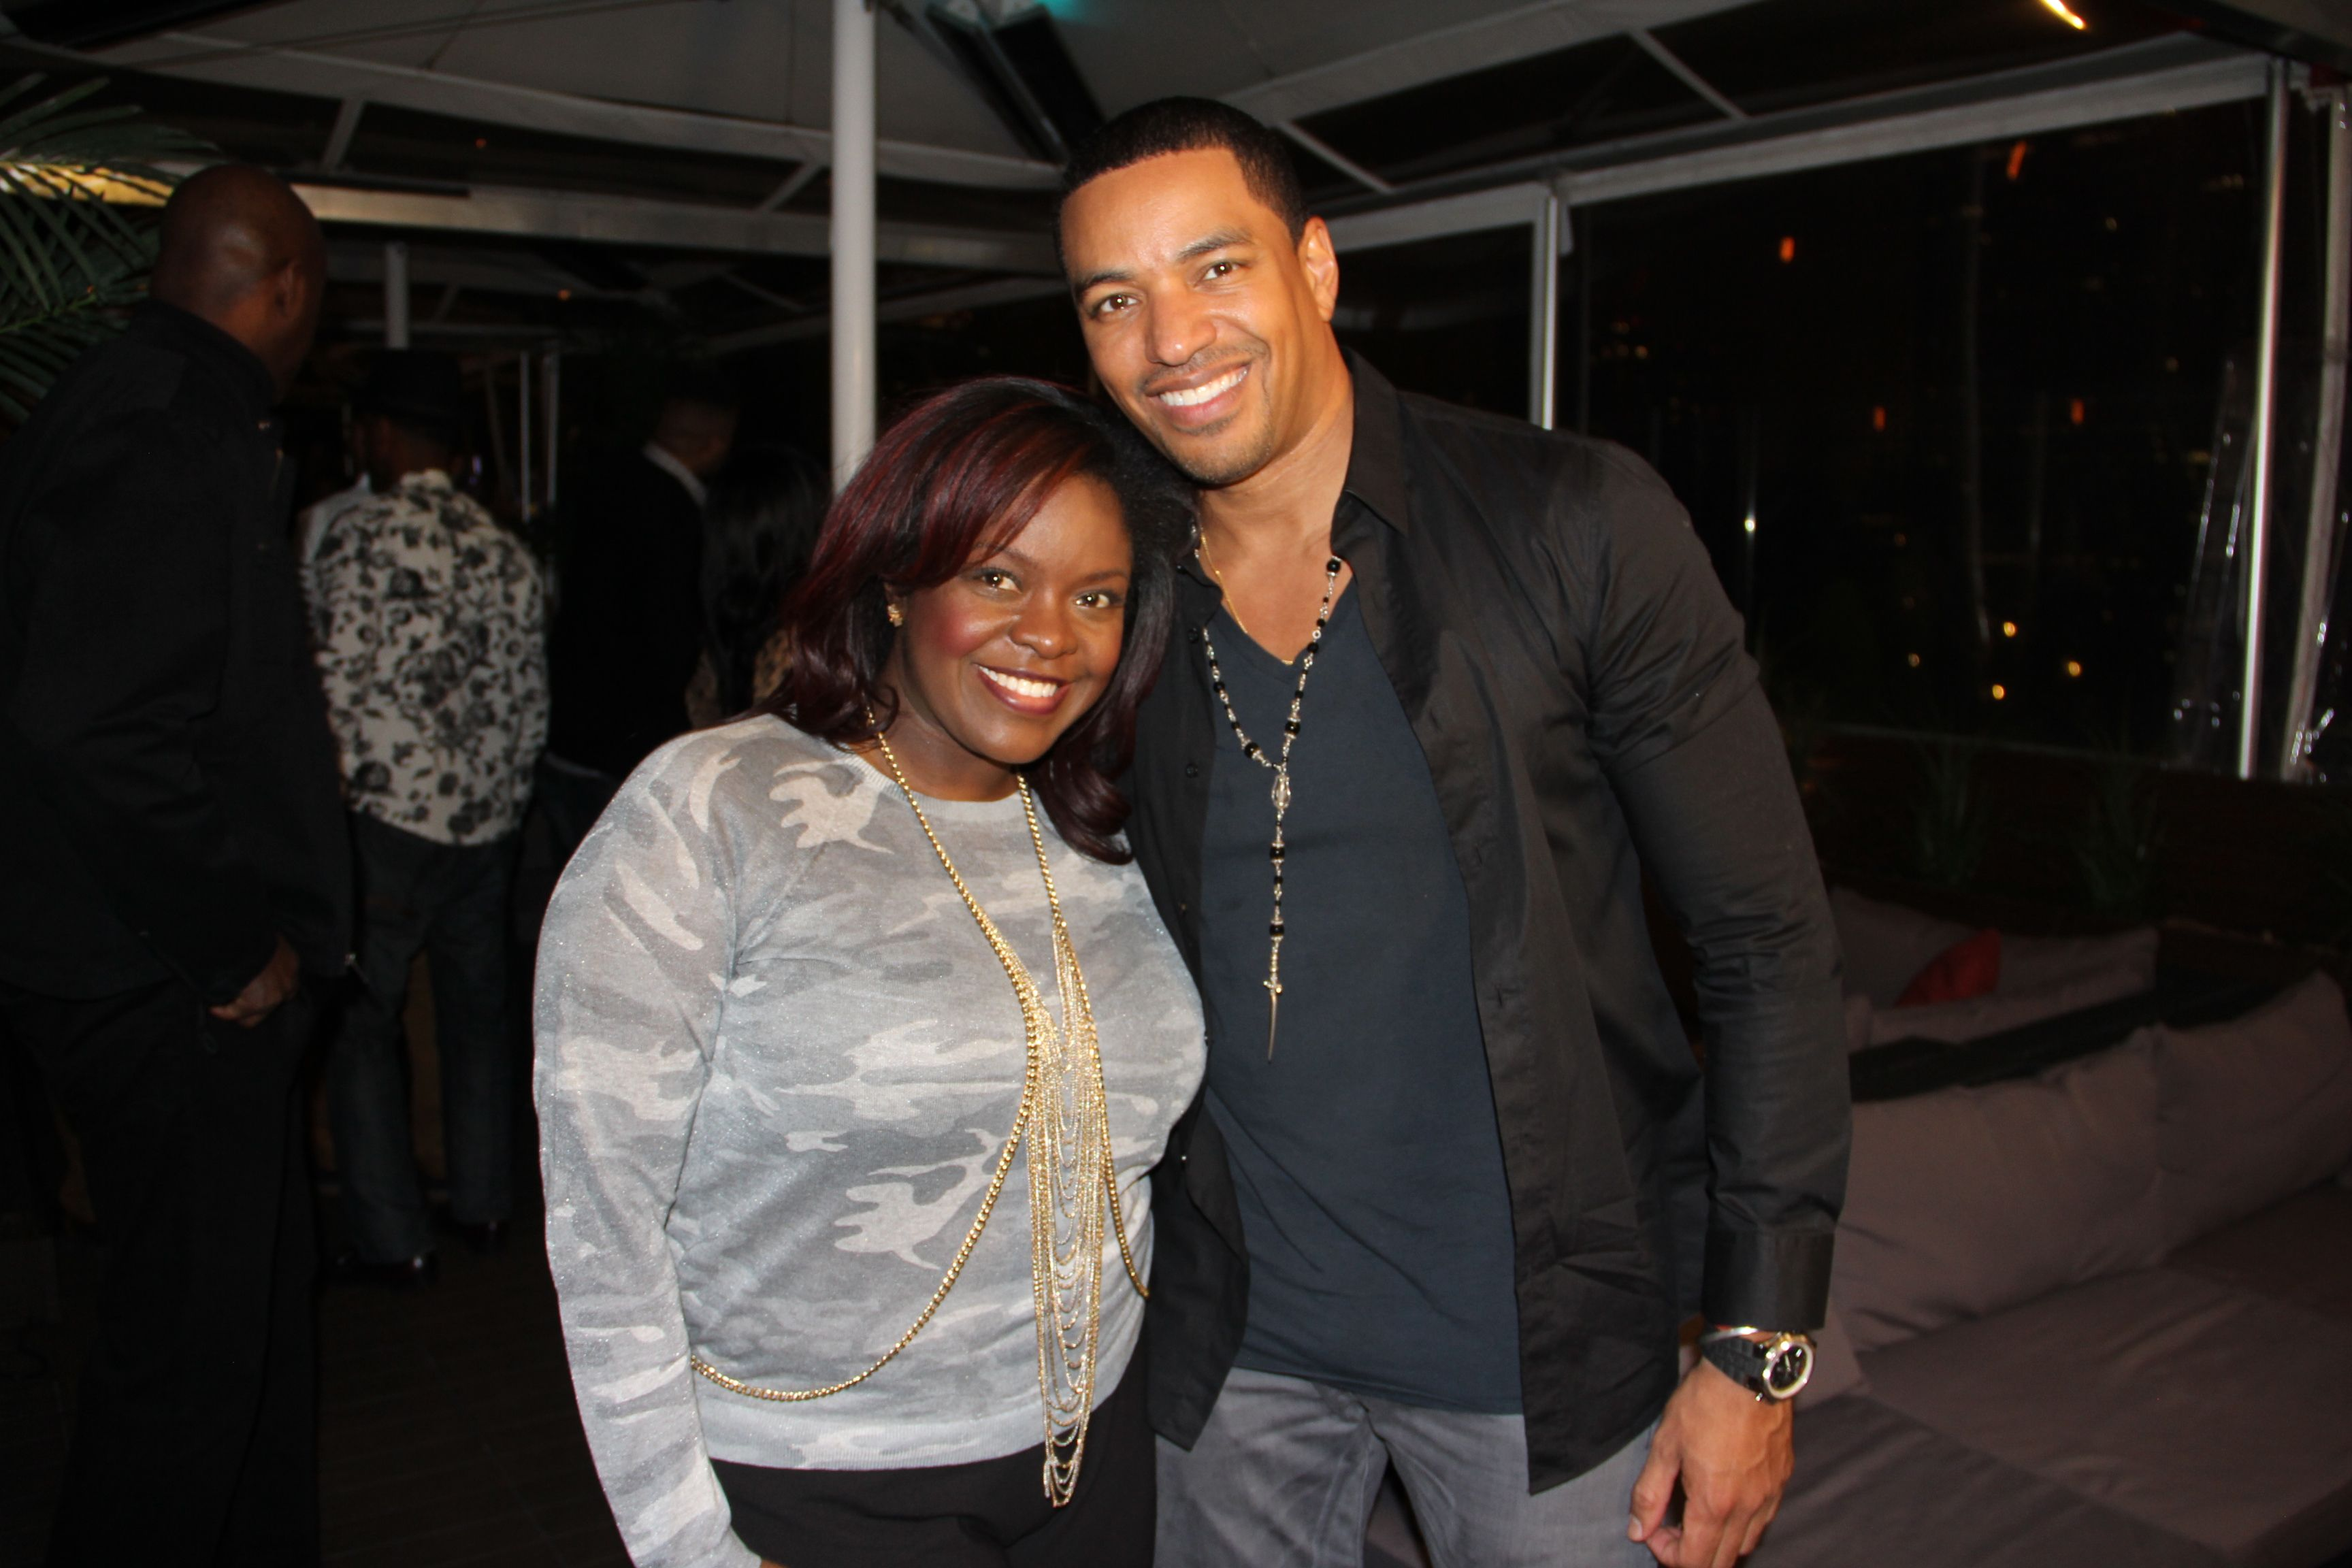 All-Star weekend's hottest Saturday ticket was 'Got Game' day party with Laz Alonso